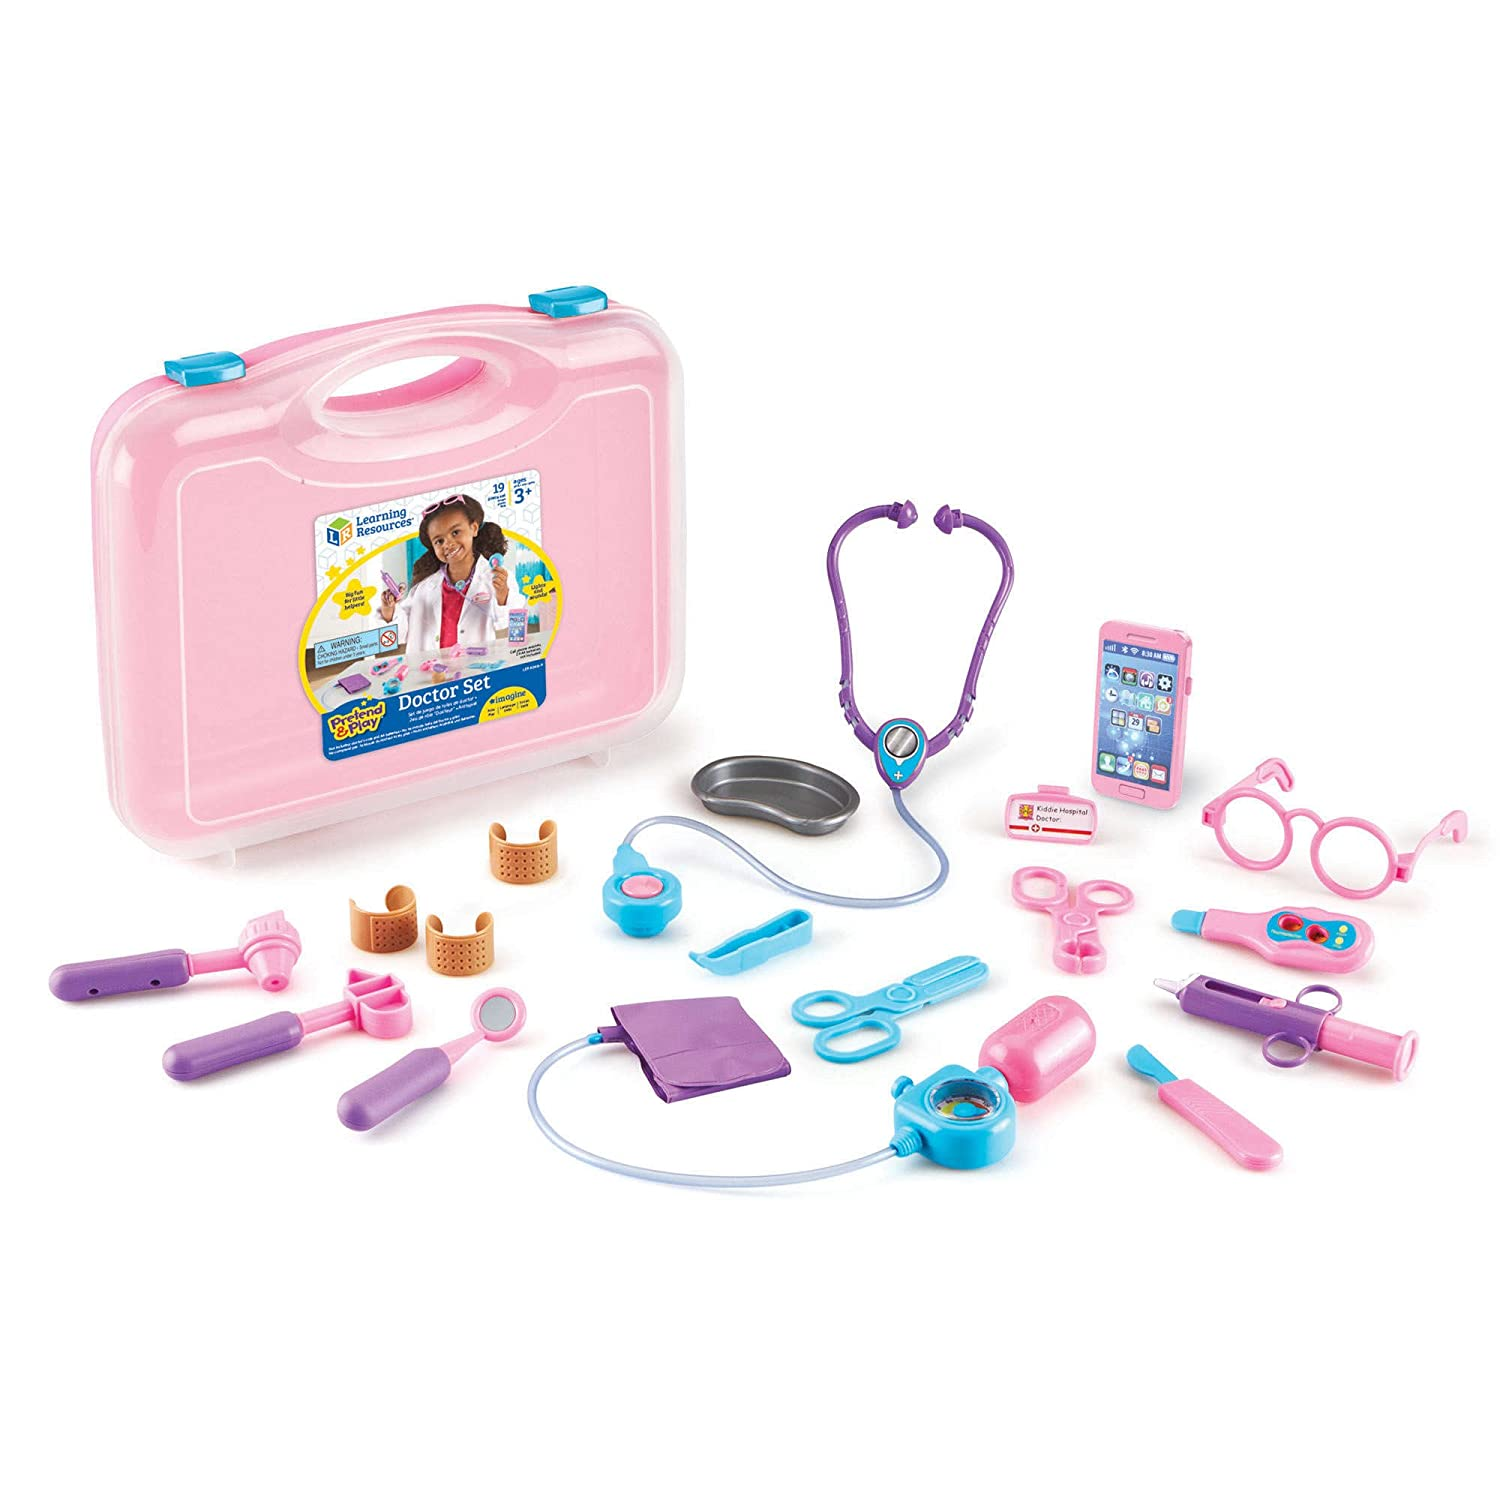 Learning Resources Pretend & Play Doctor Kit for Kids, 19 Piece set, Pink LER9048-P